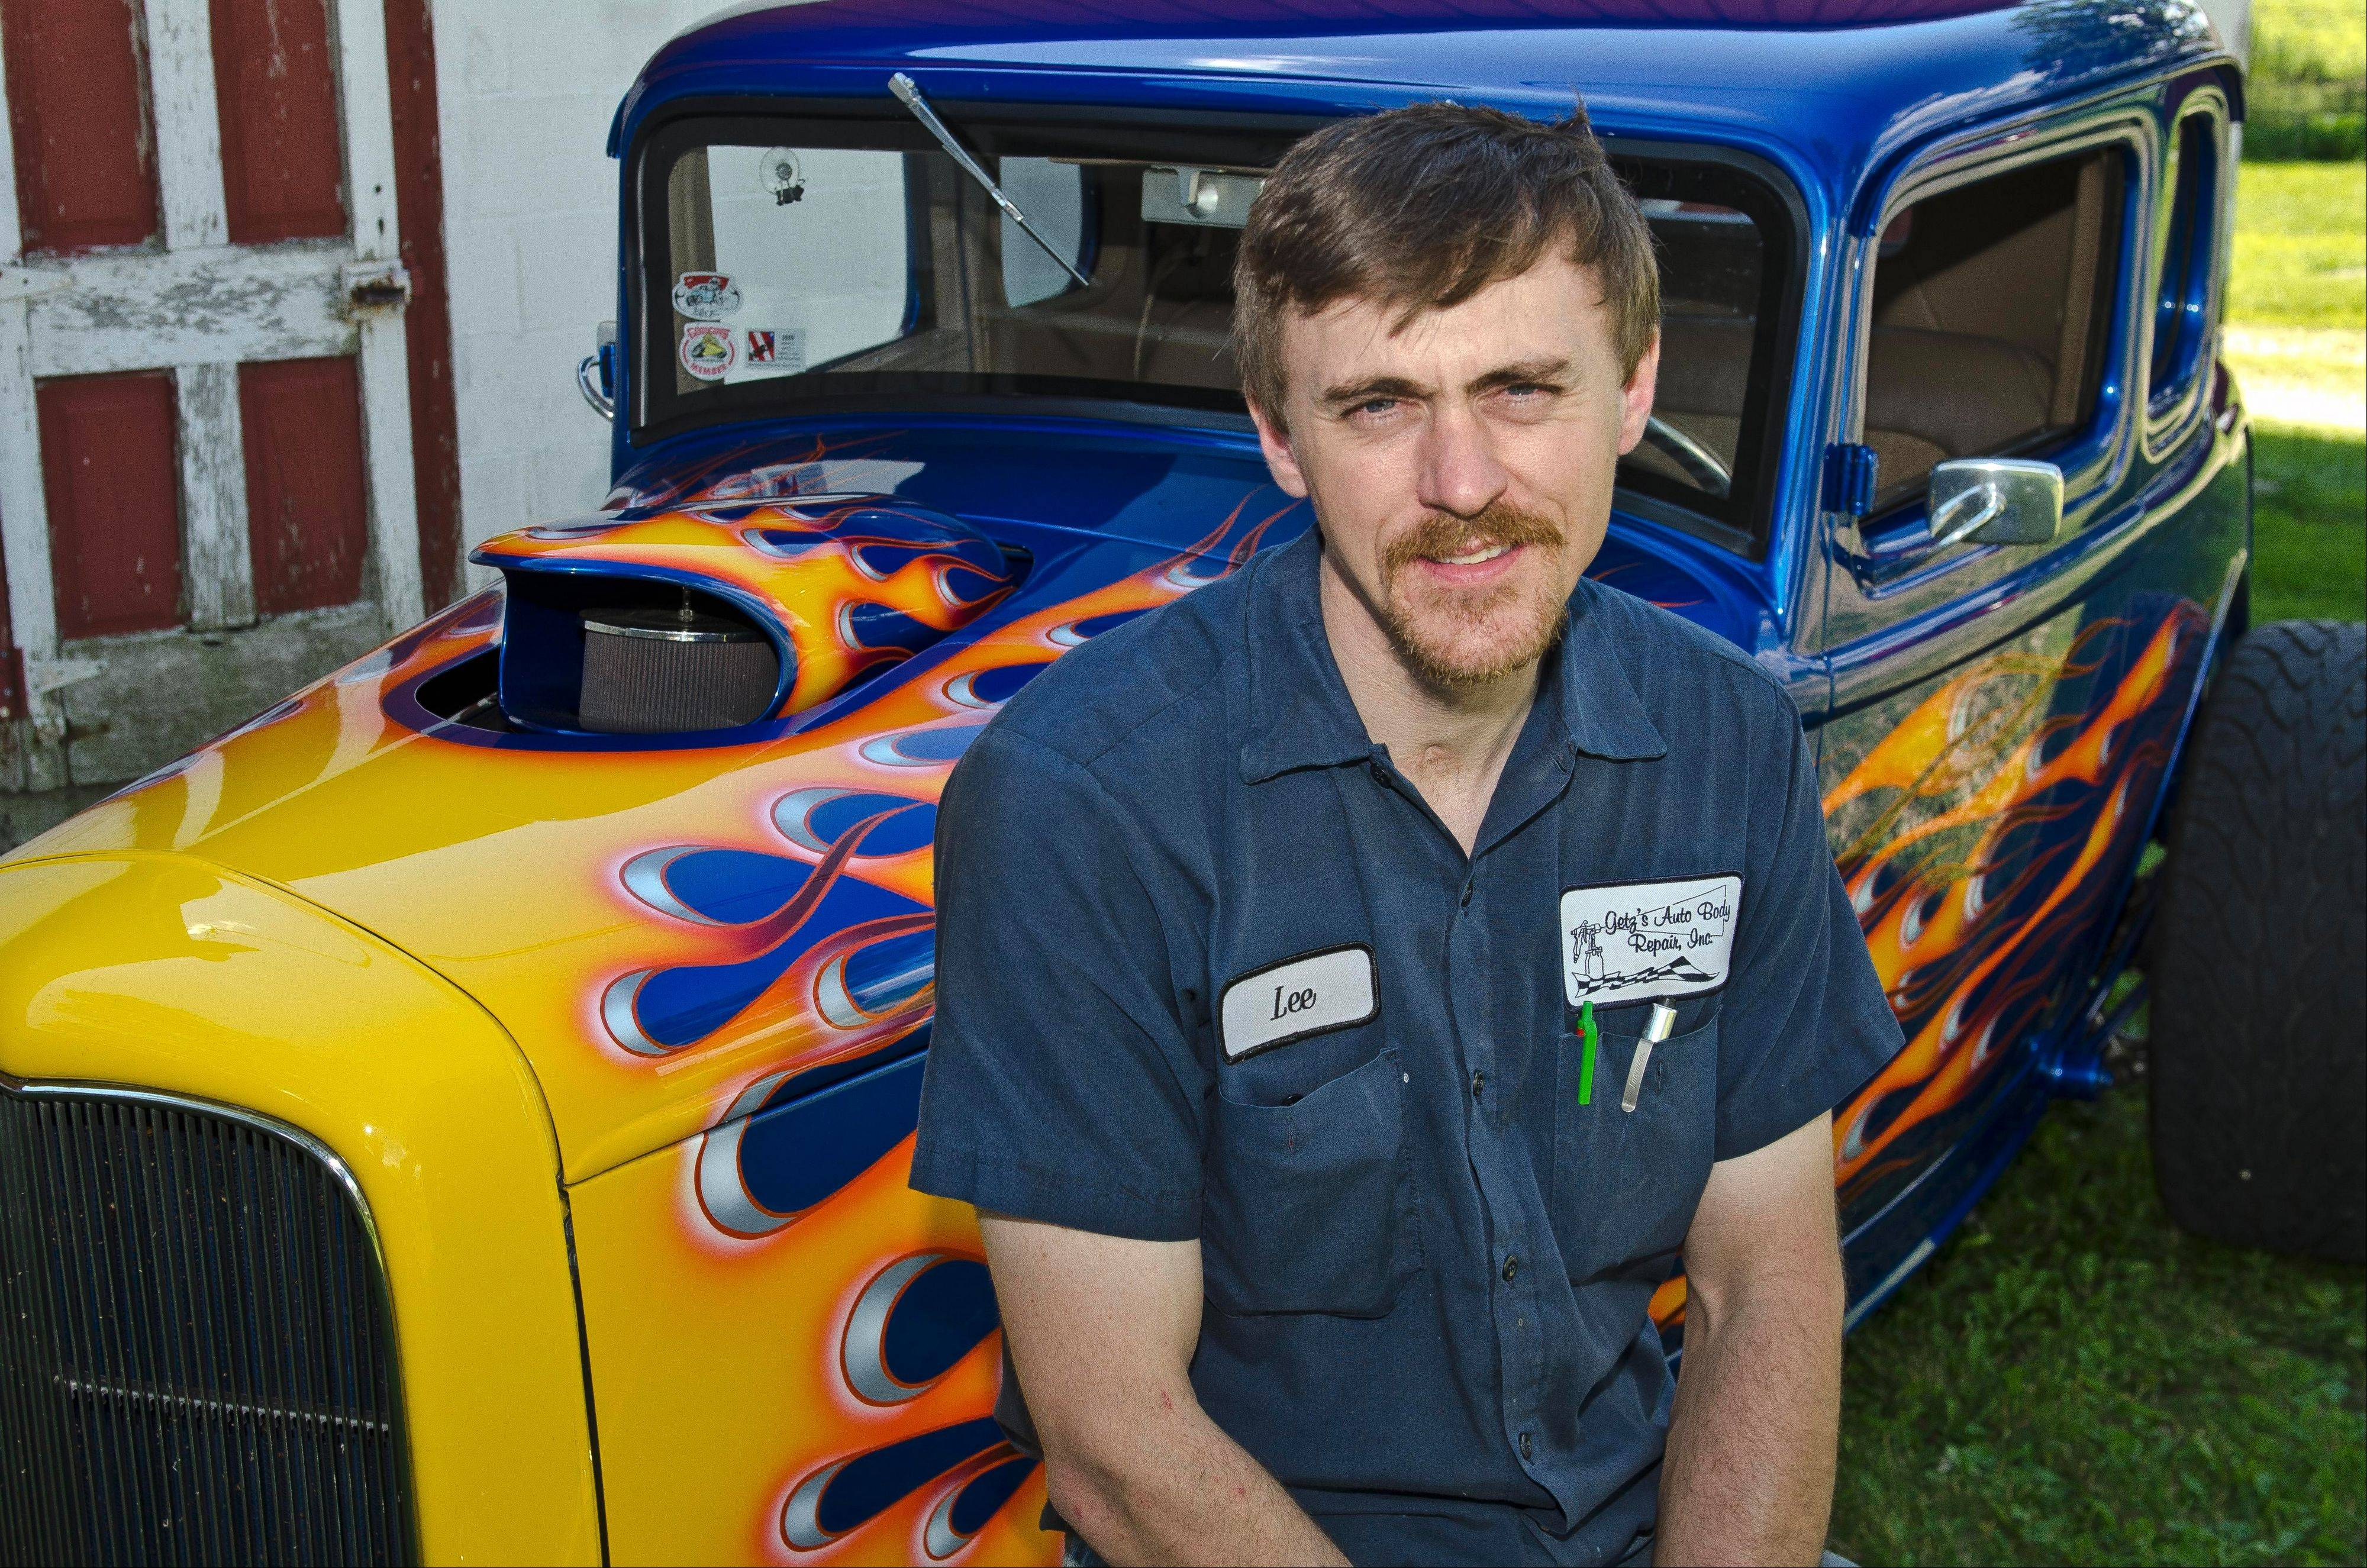 Lee Getzelman of Hampshire has been driving and modifying his 1932 Ford coupe since he was 16 years old.